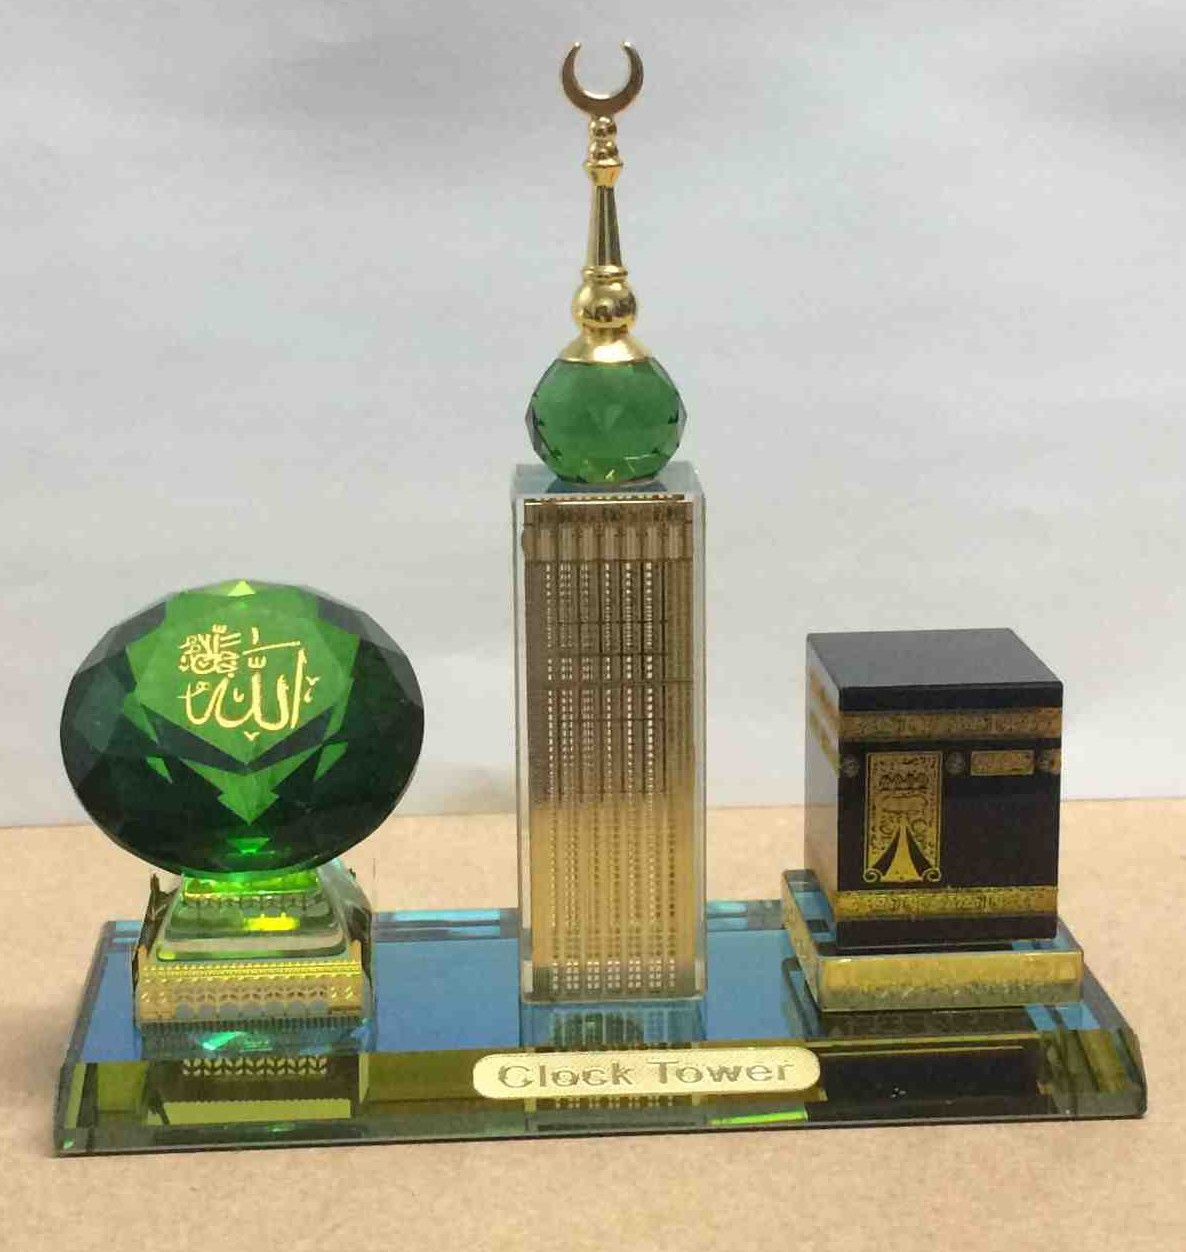 Islam eBay Collectables Clock tower, Eid gifts, Crystal